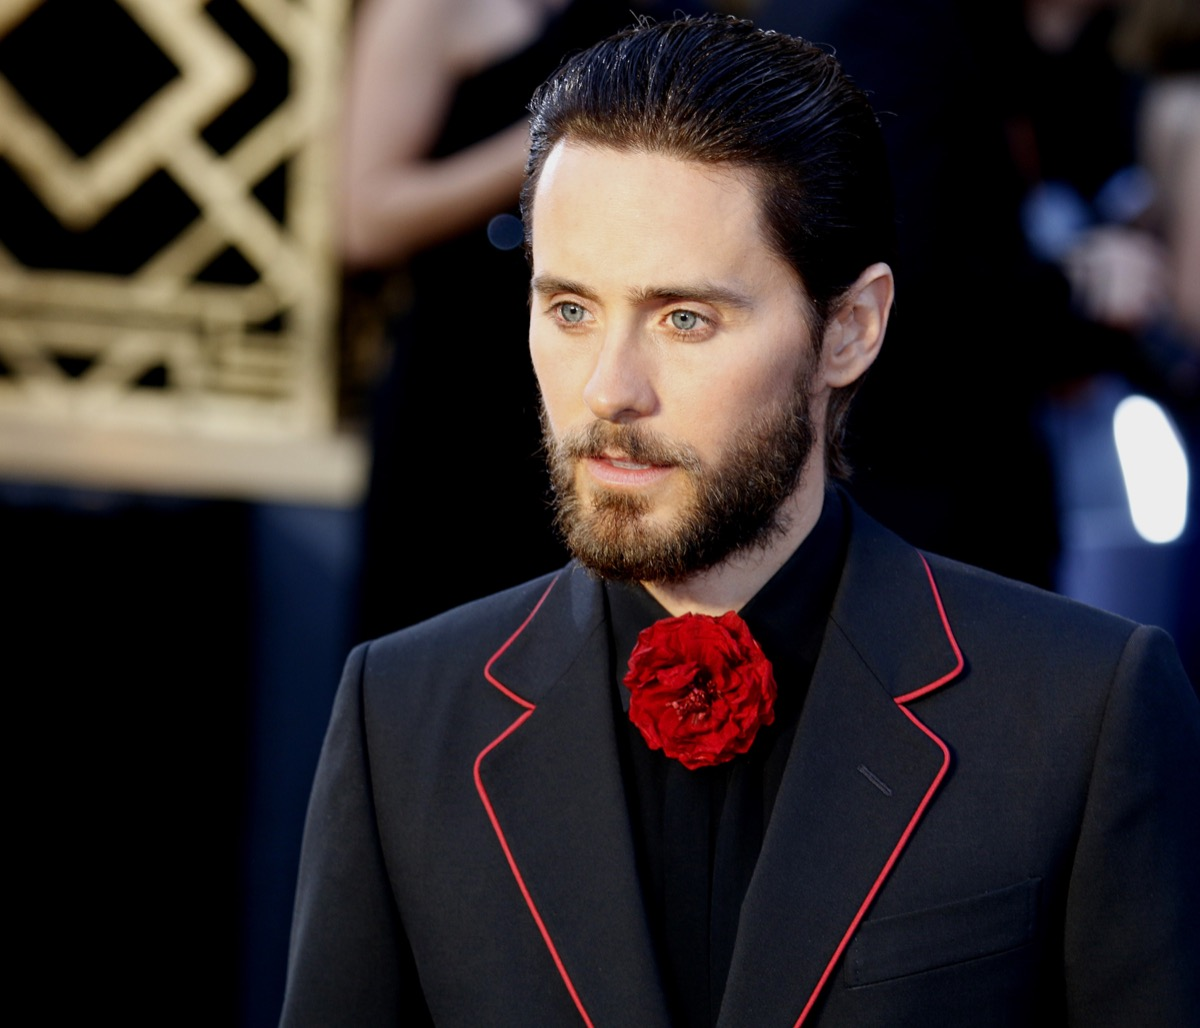 vegan celebrities - Jared Leto at the 88th Annual Academy Awards held at the Hollywood & Highland Center in Hollywood, USA on February 28, 2016. - Image